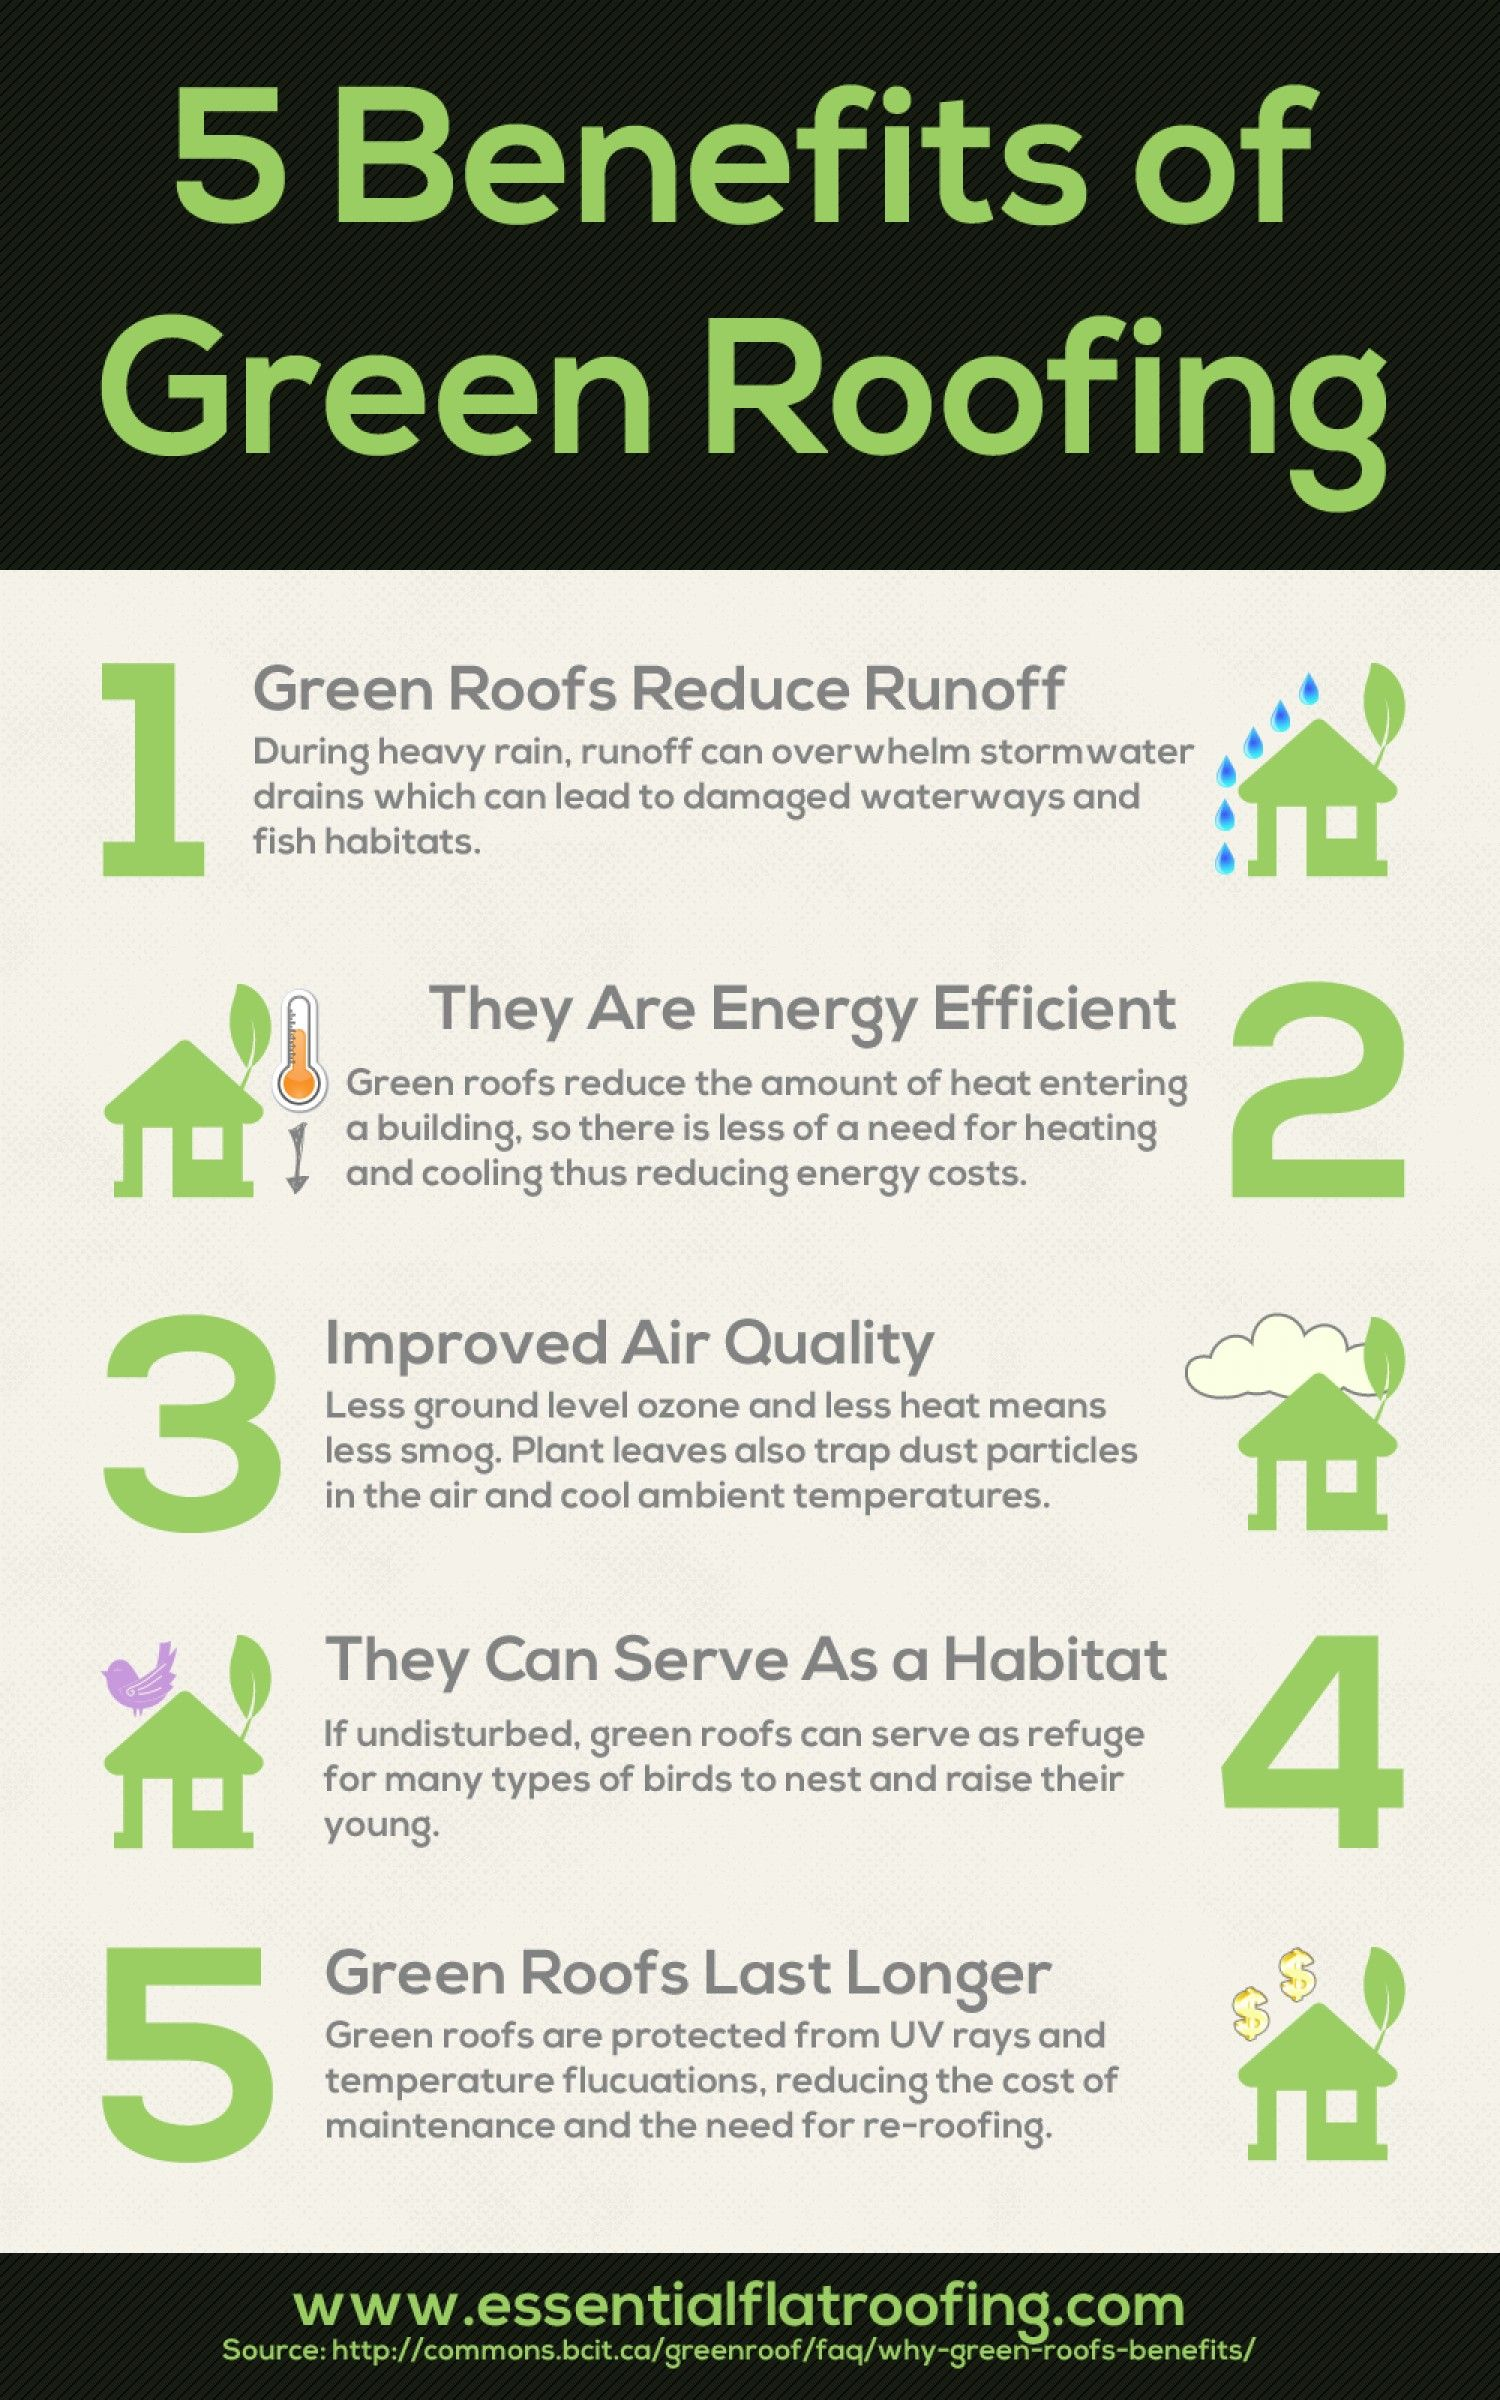 5 green roofing benefits infographic infographs pinterest 5 green roofing benefits fandeluxe Choice Image